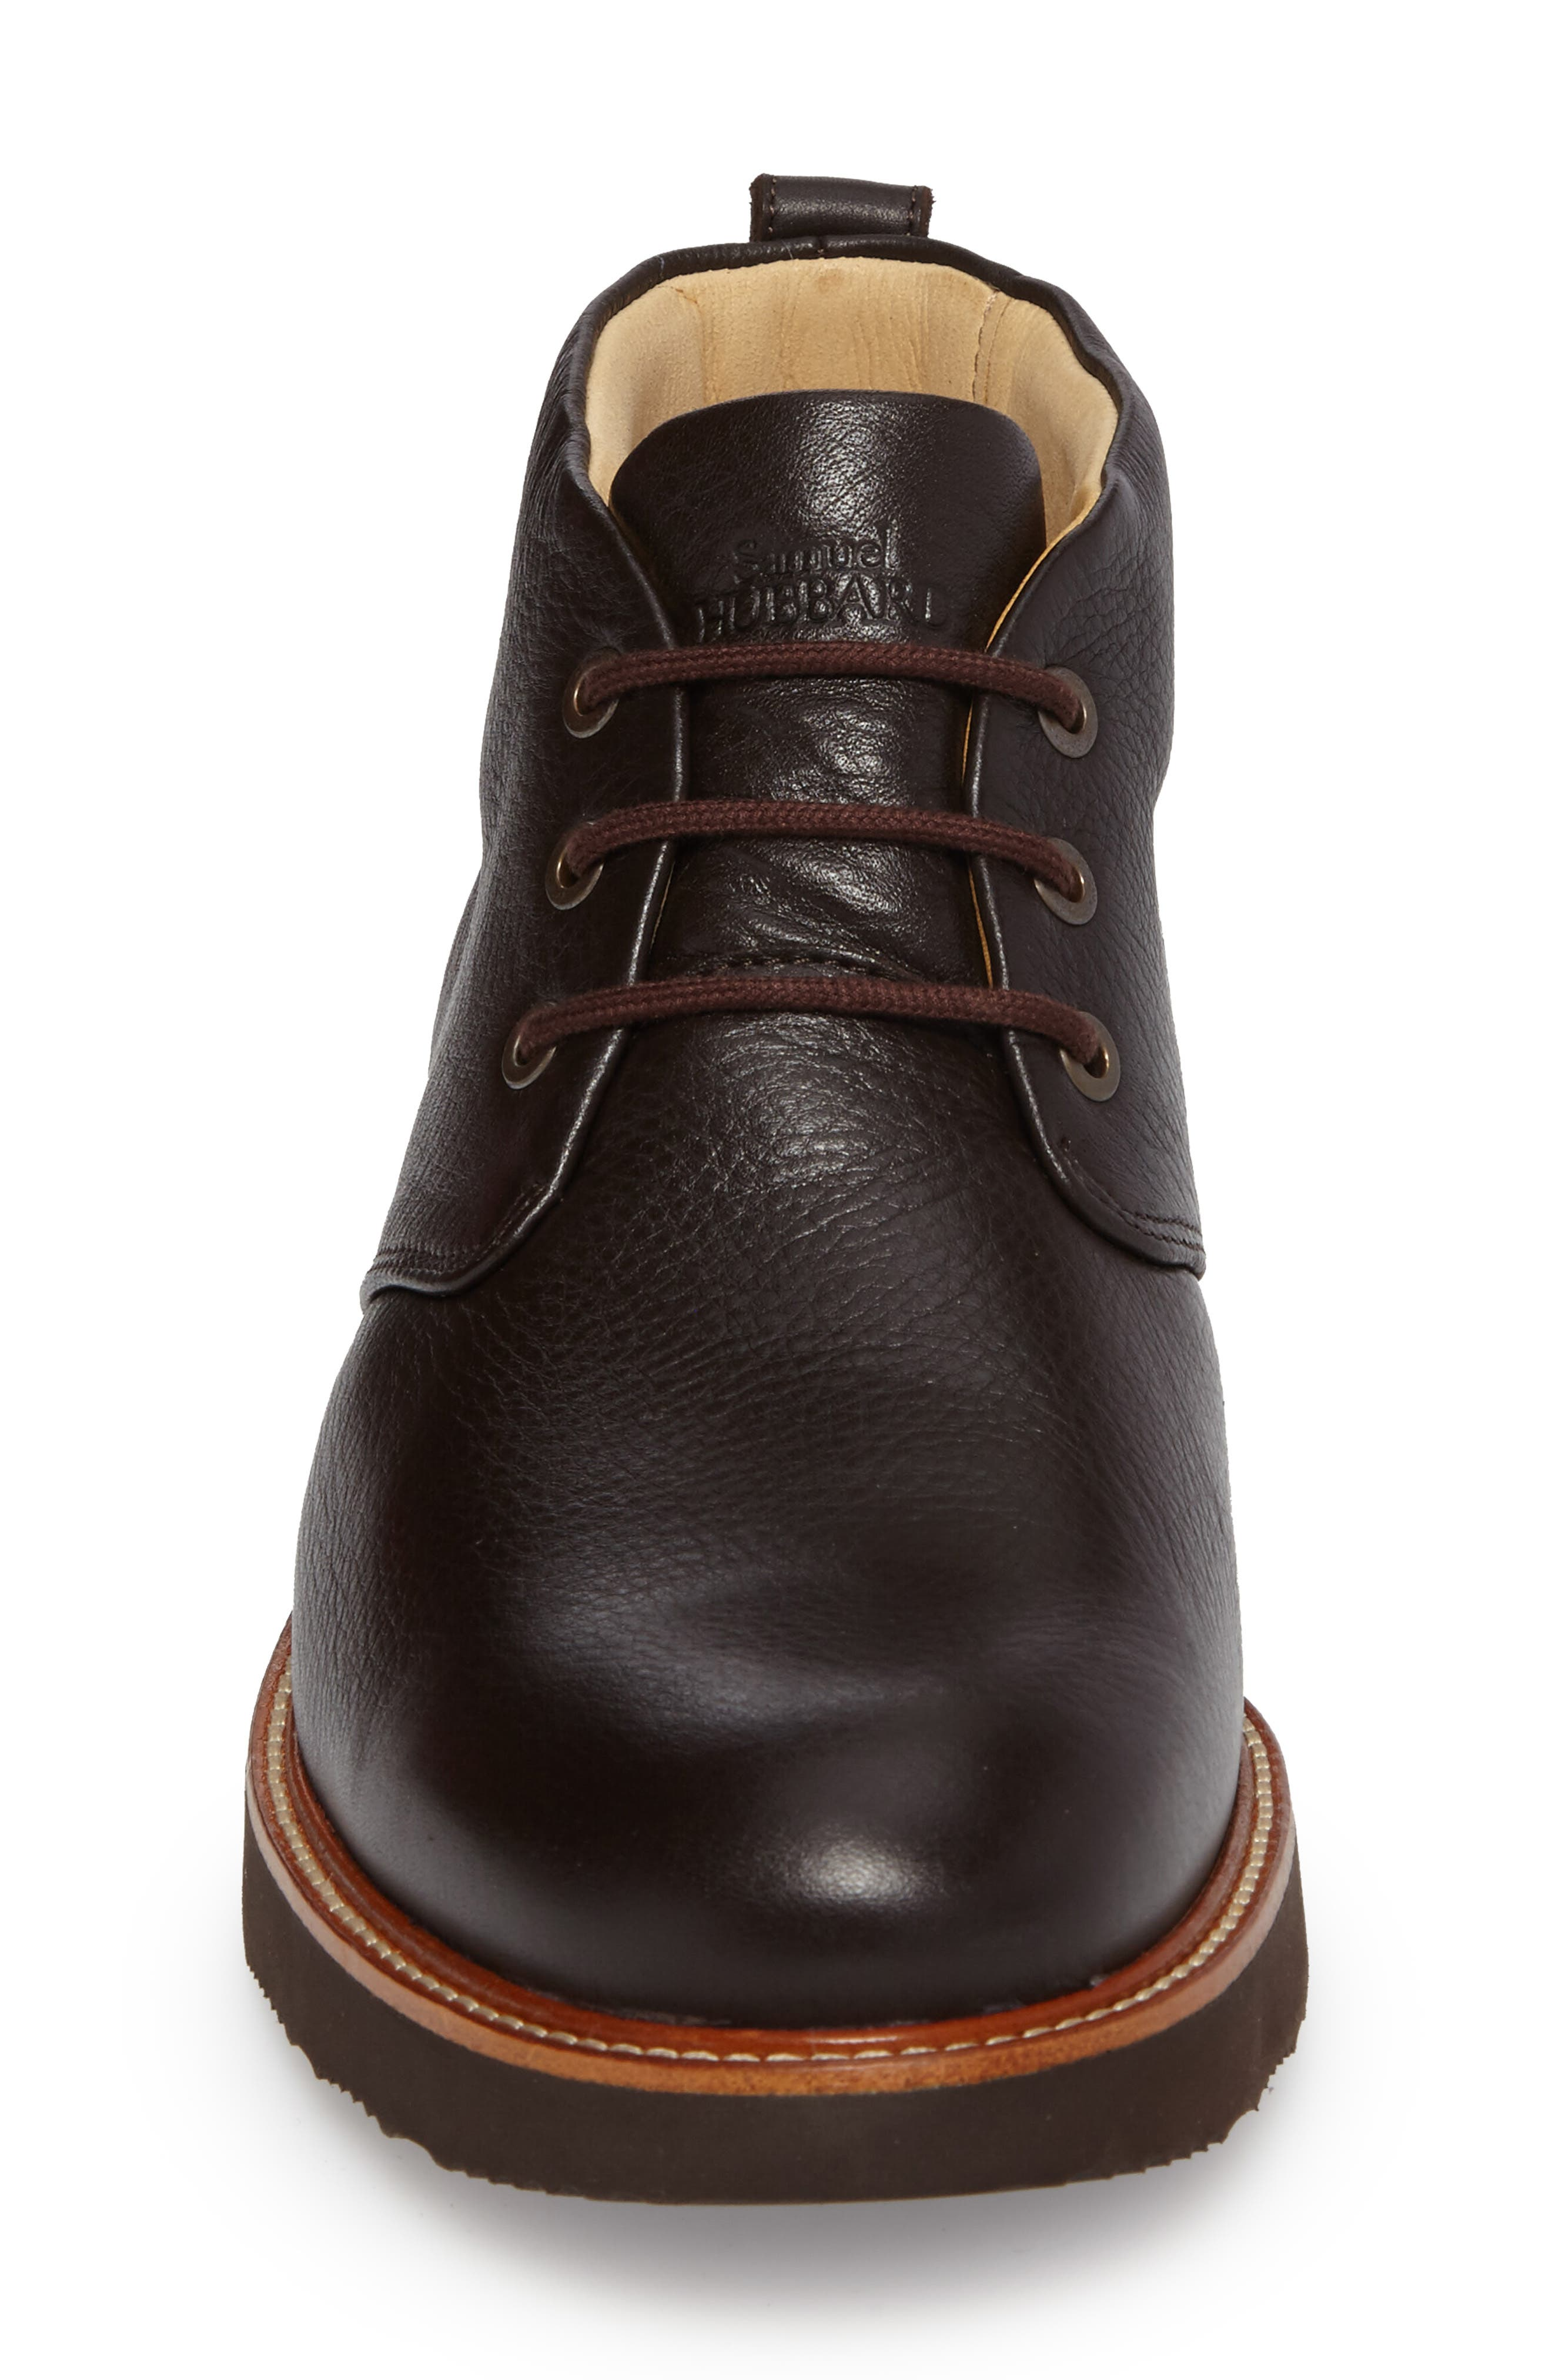 Re-Boot Chukka Boot,                             Alternate thumbnail 4, color,                             ESPRESSO LEATHER